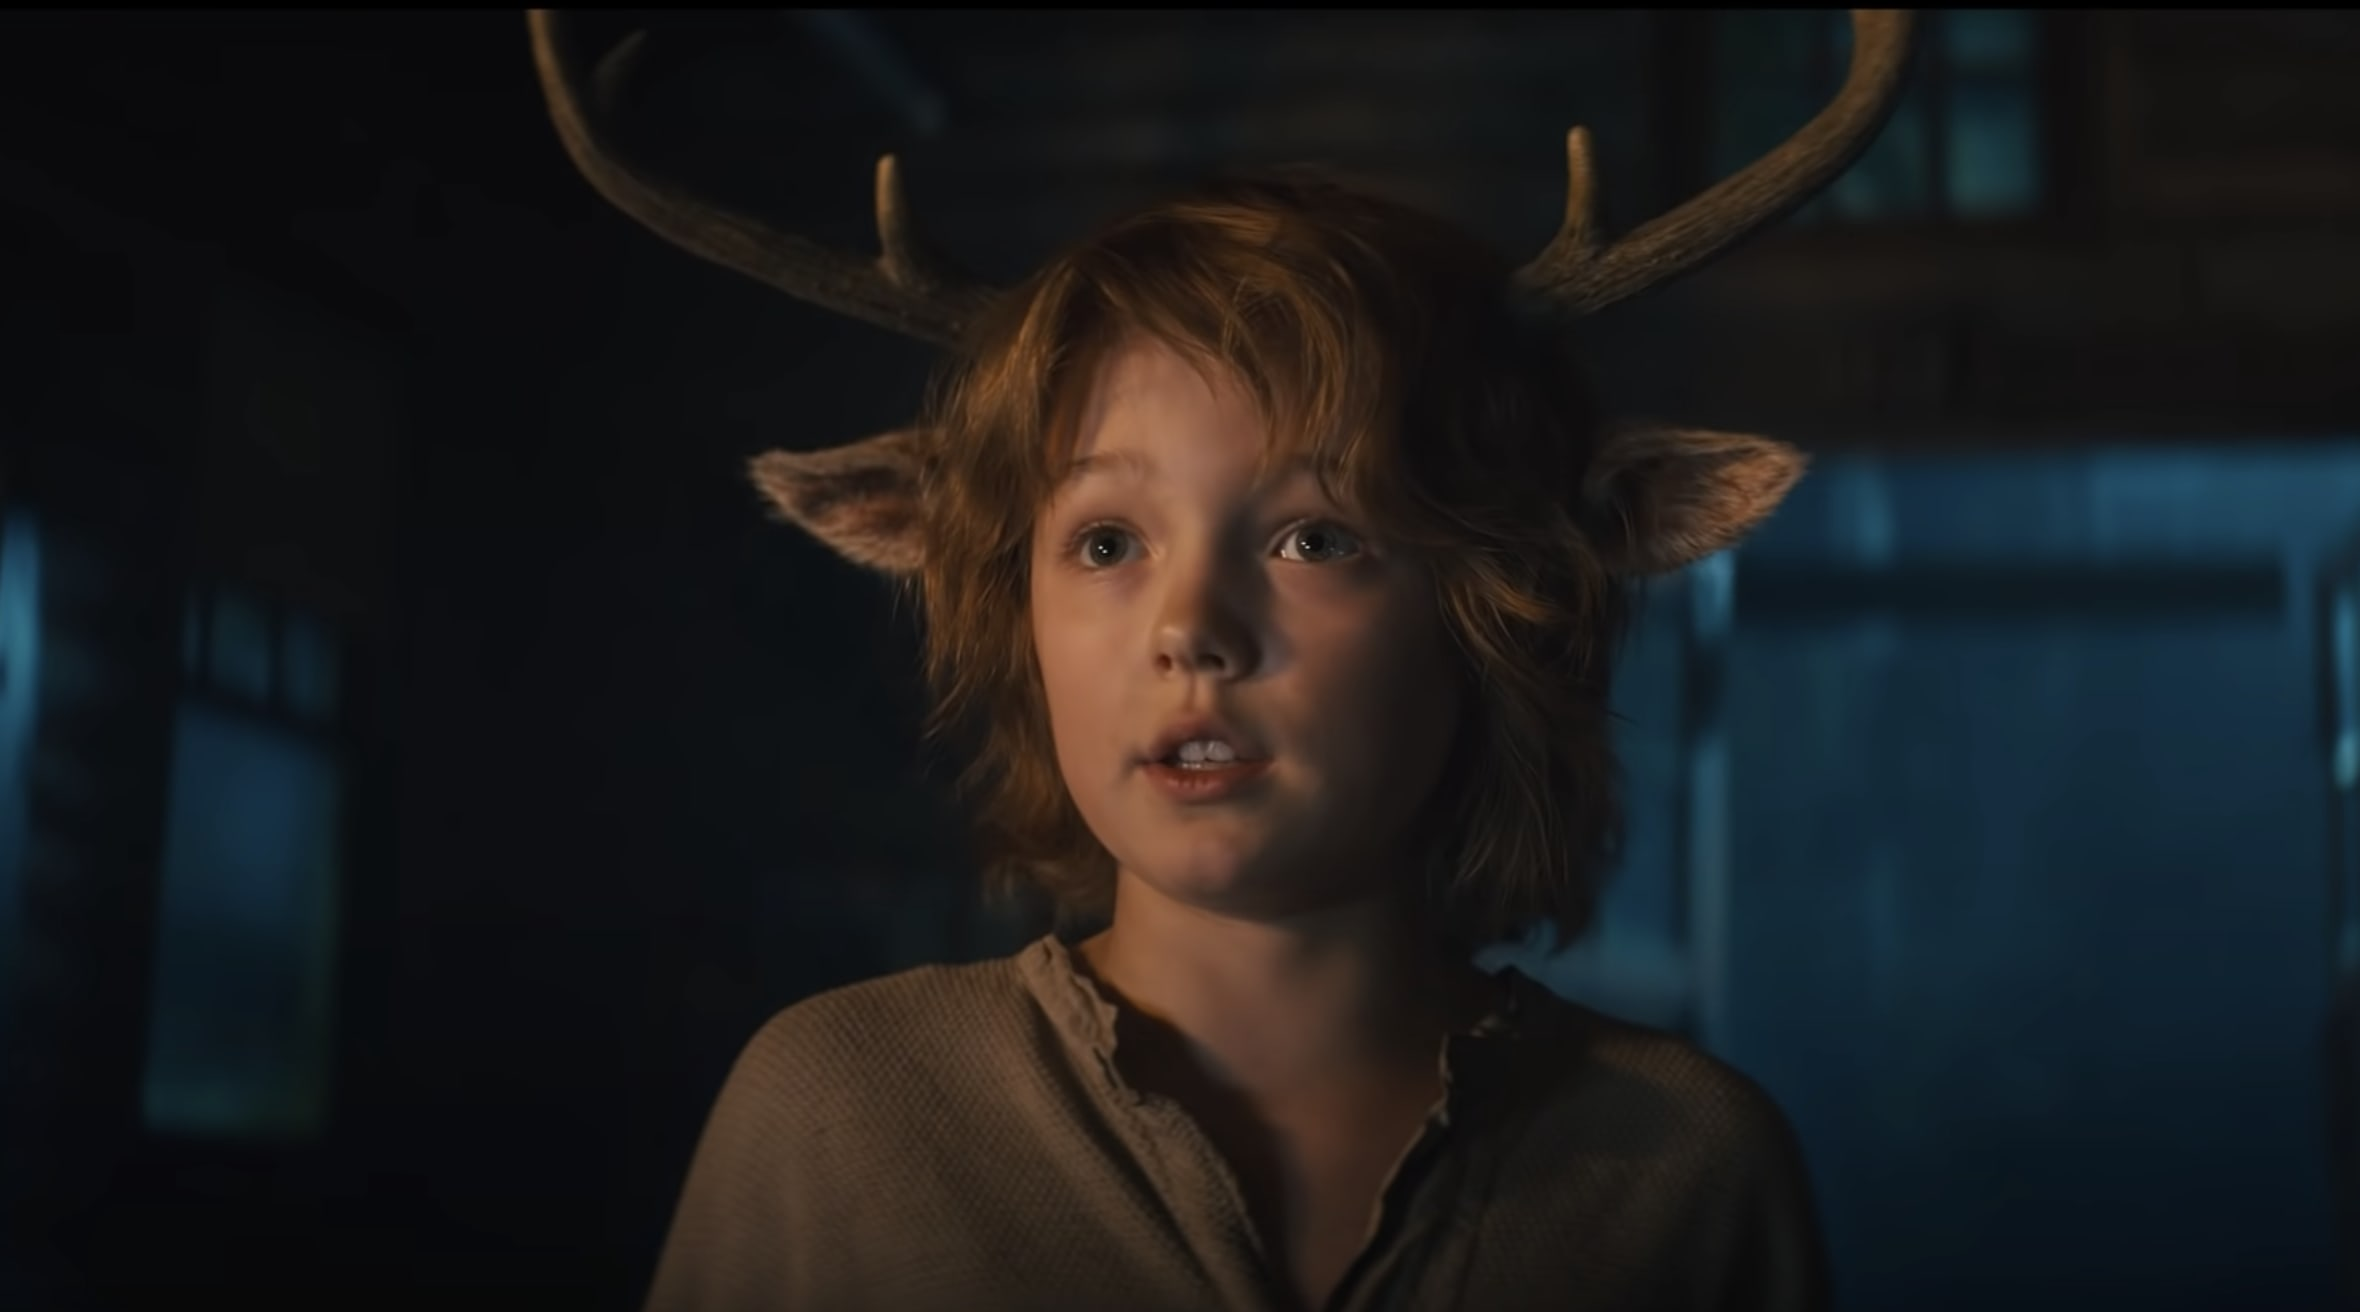 From Middle Earth to Sweet Tooth: Why NZ's a Screen Fantasyland